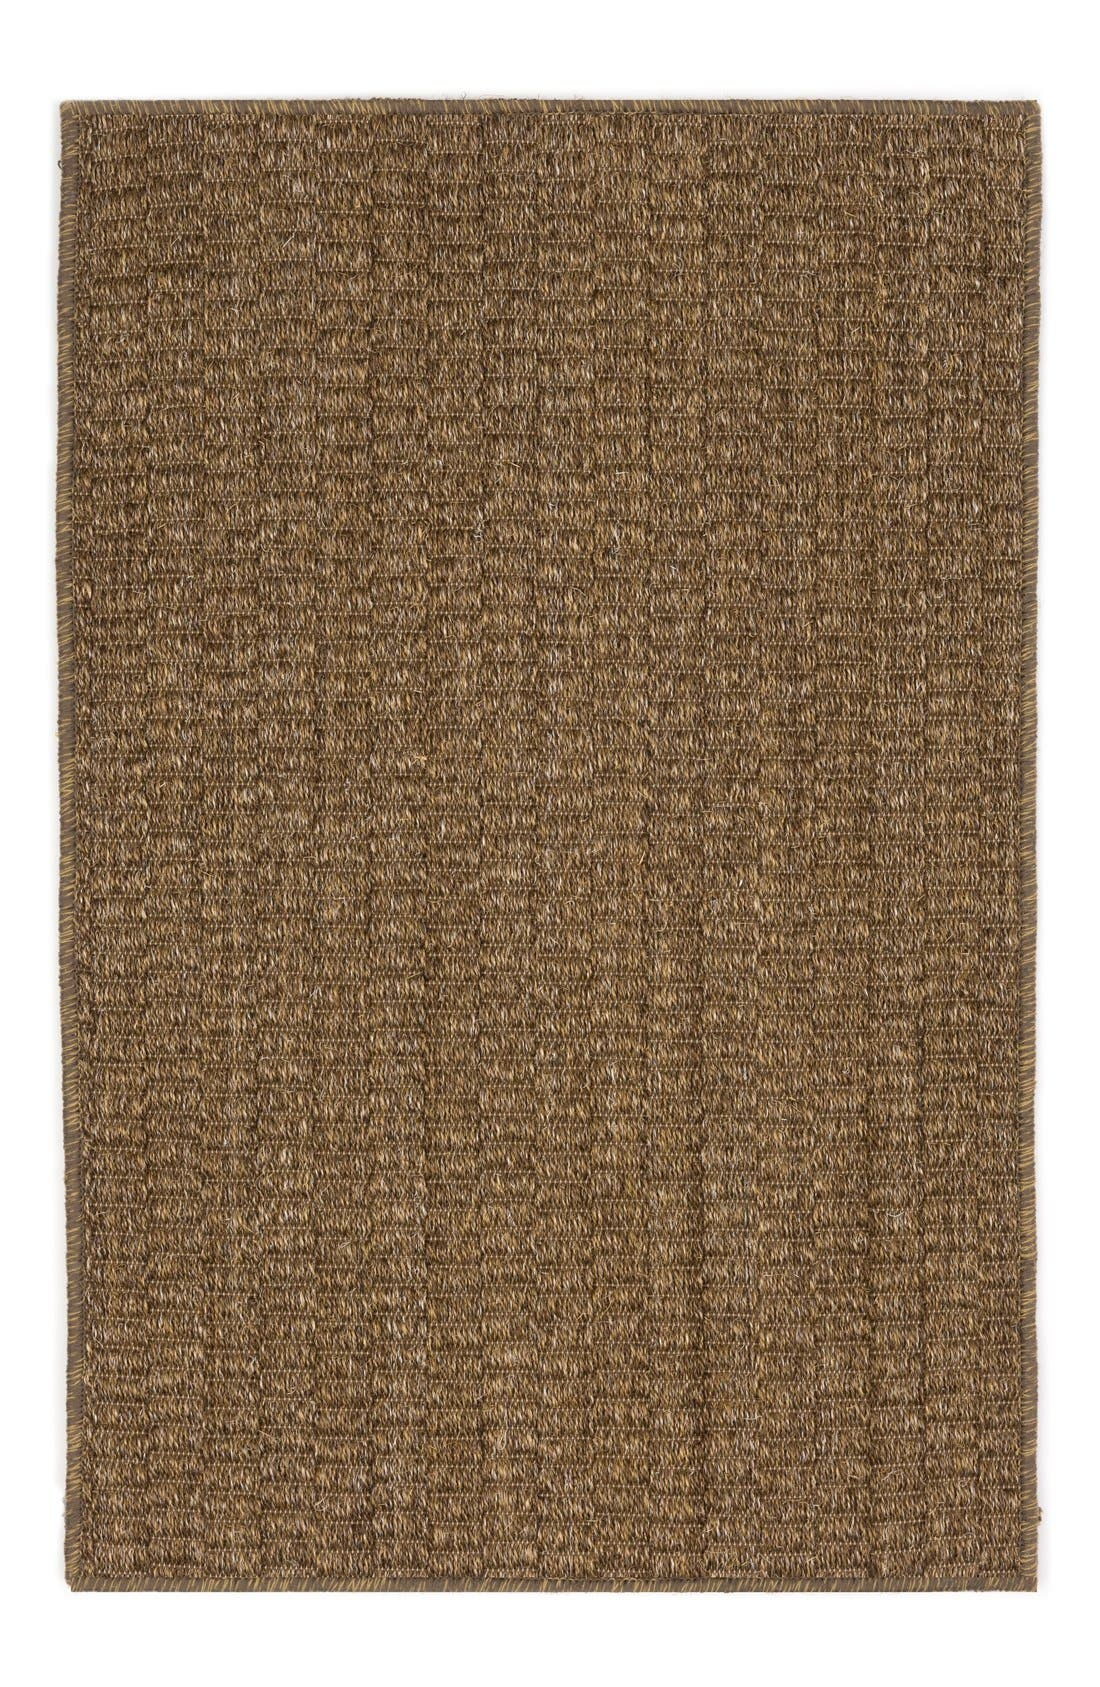 Alternate Image 1 Selected - Dash & Albert Wicker Rug